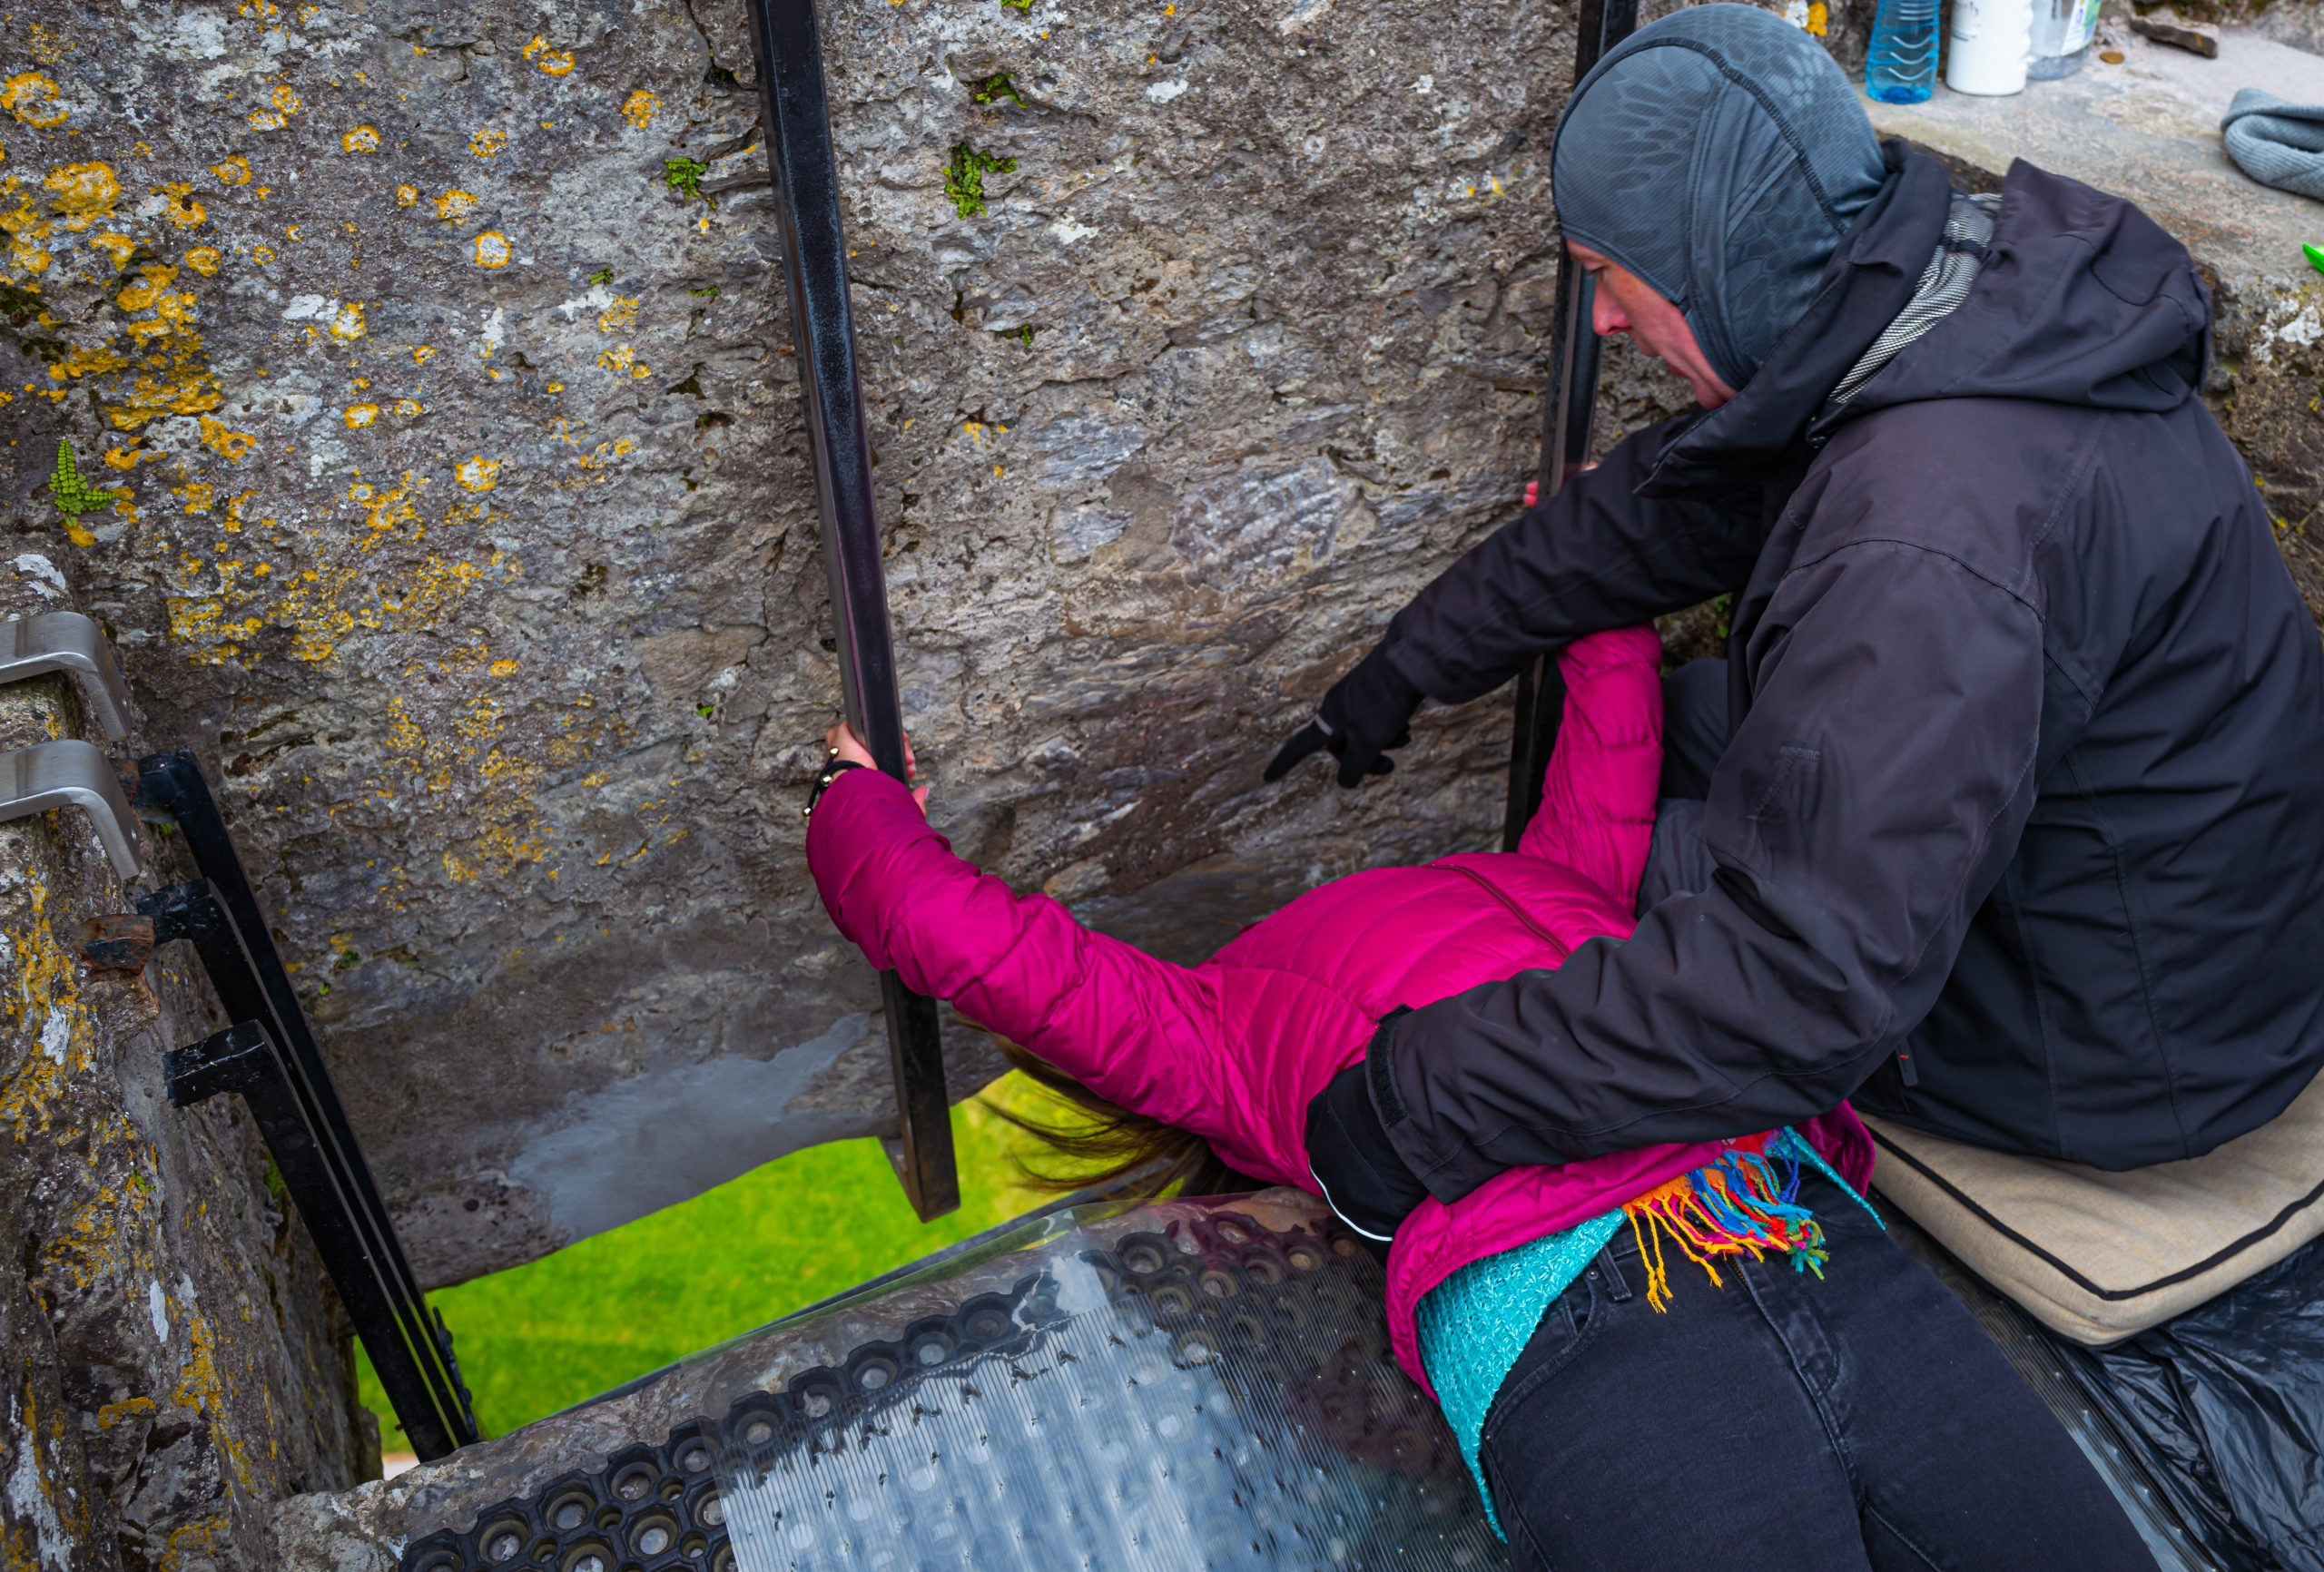 traveling to ireland means kissing the blarney stone!